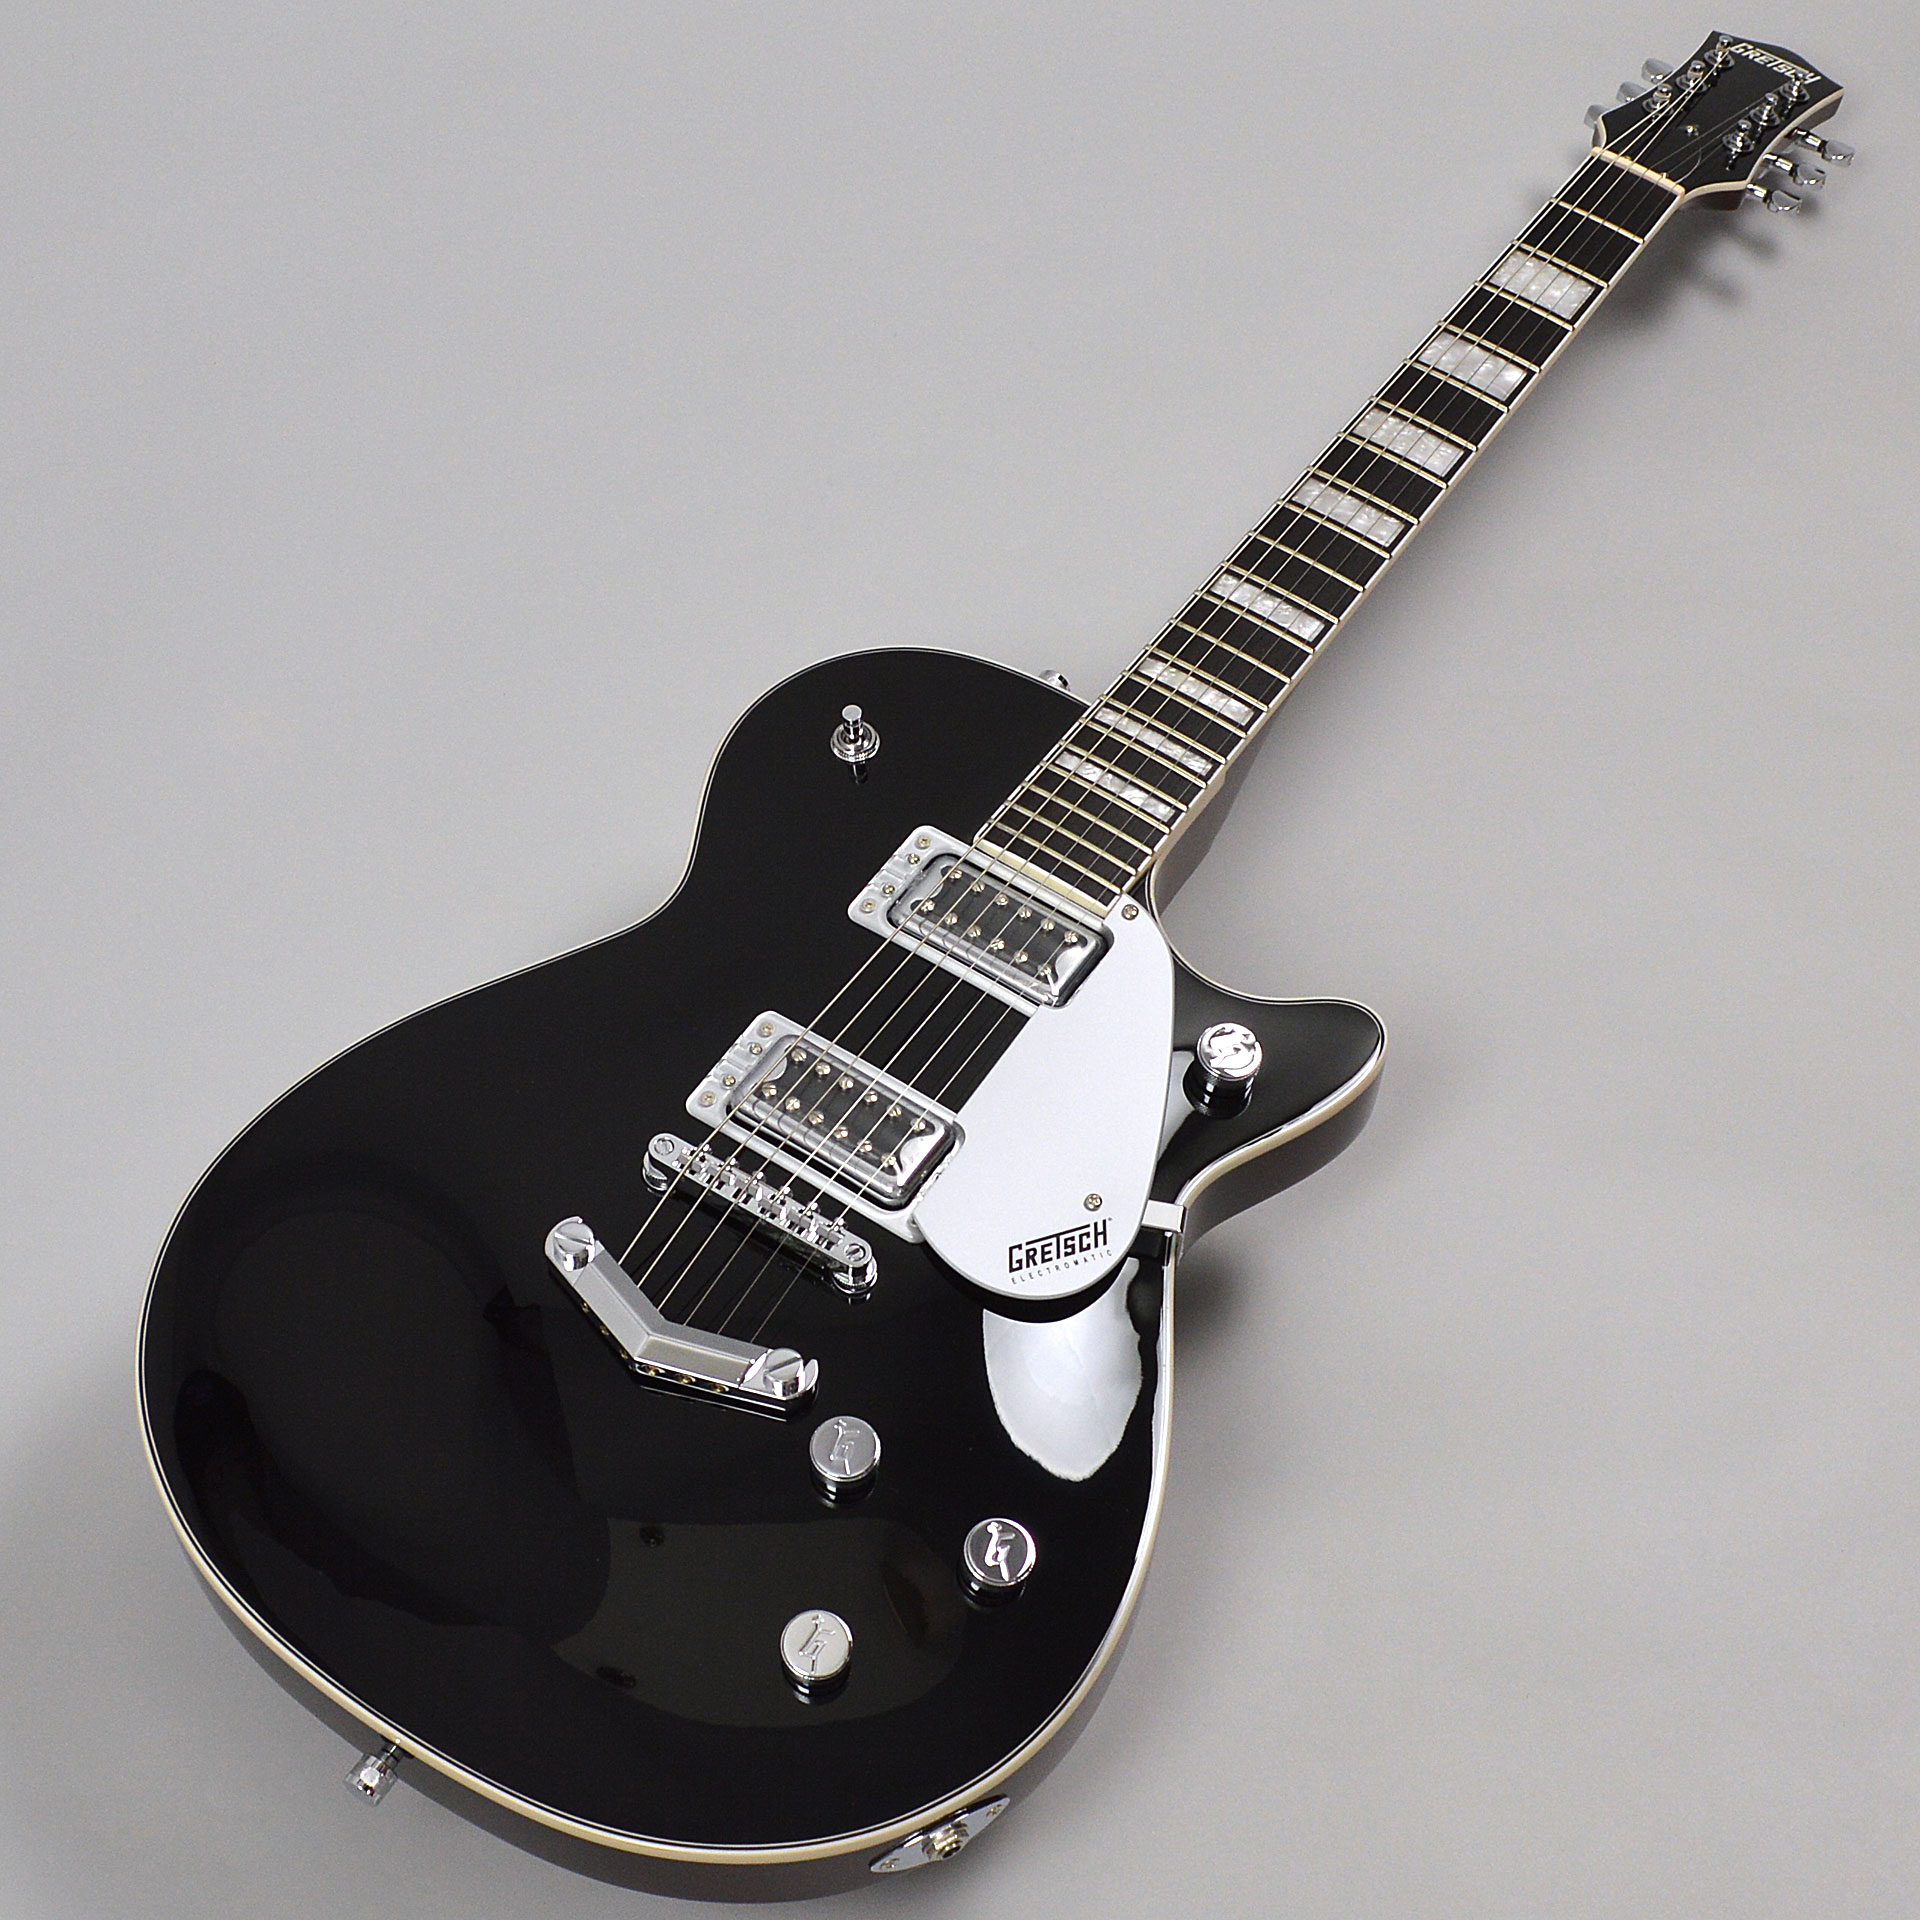 G5220 Electromatic Jet BT Single-Cut with V-Stoptail Blackの全体画像(縦)